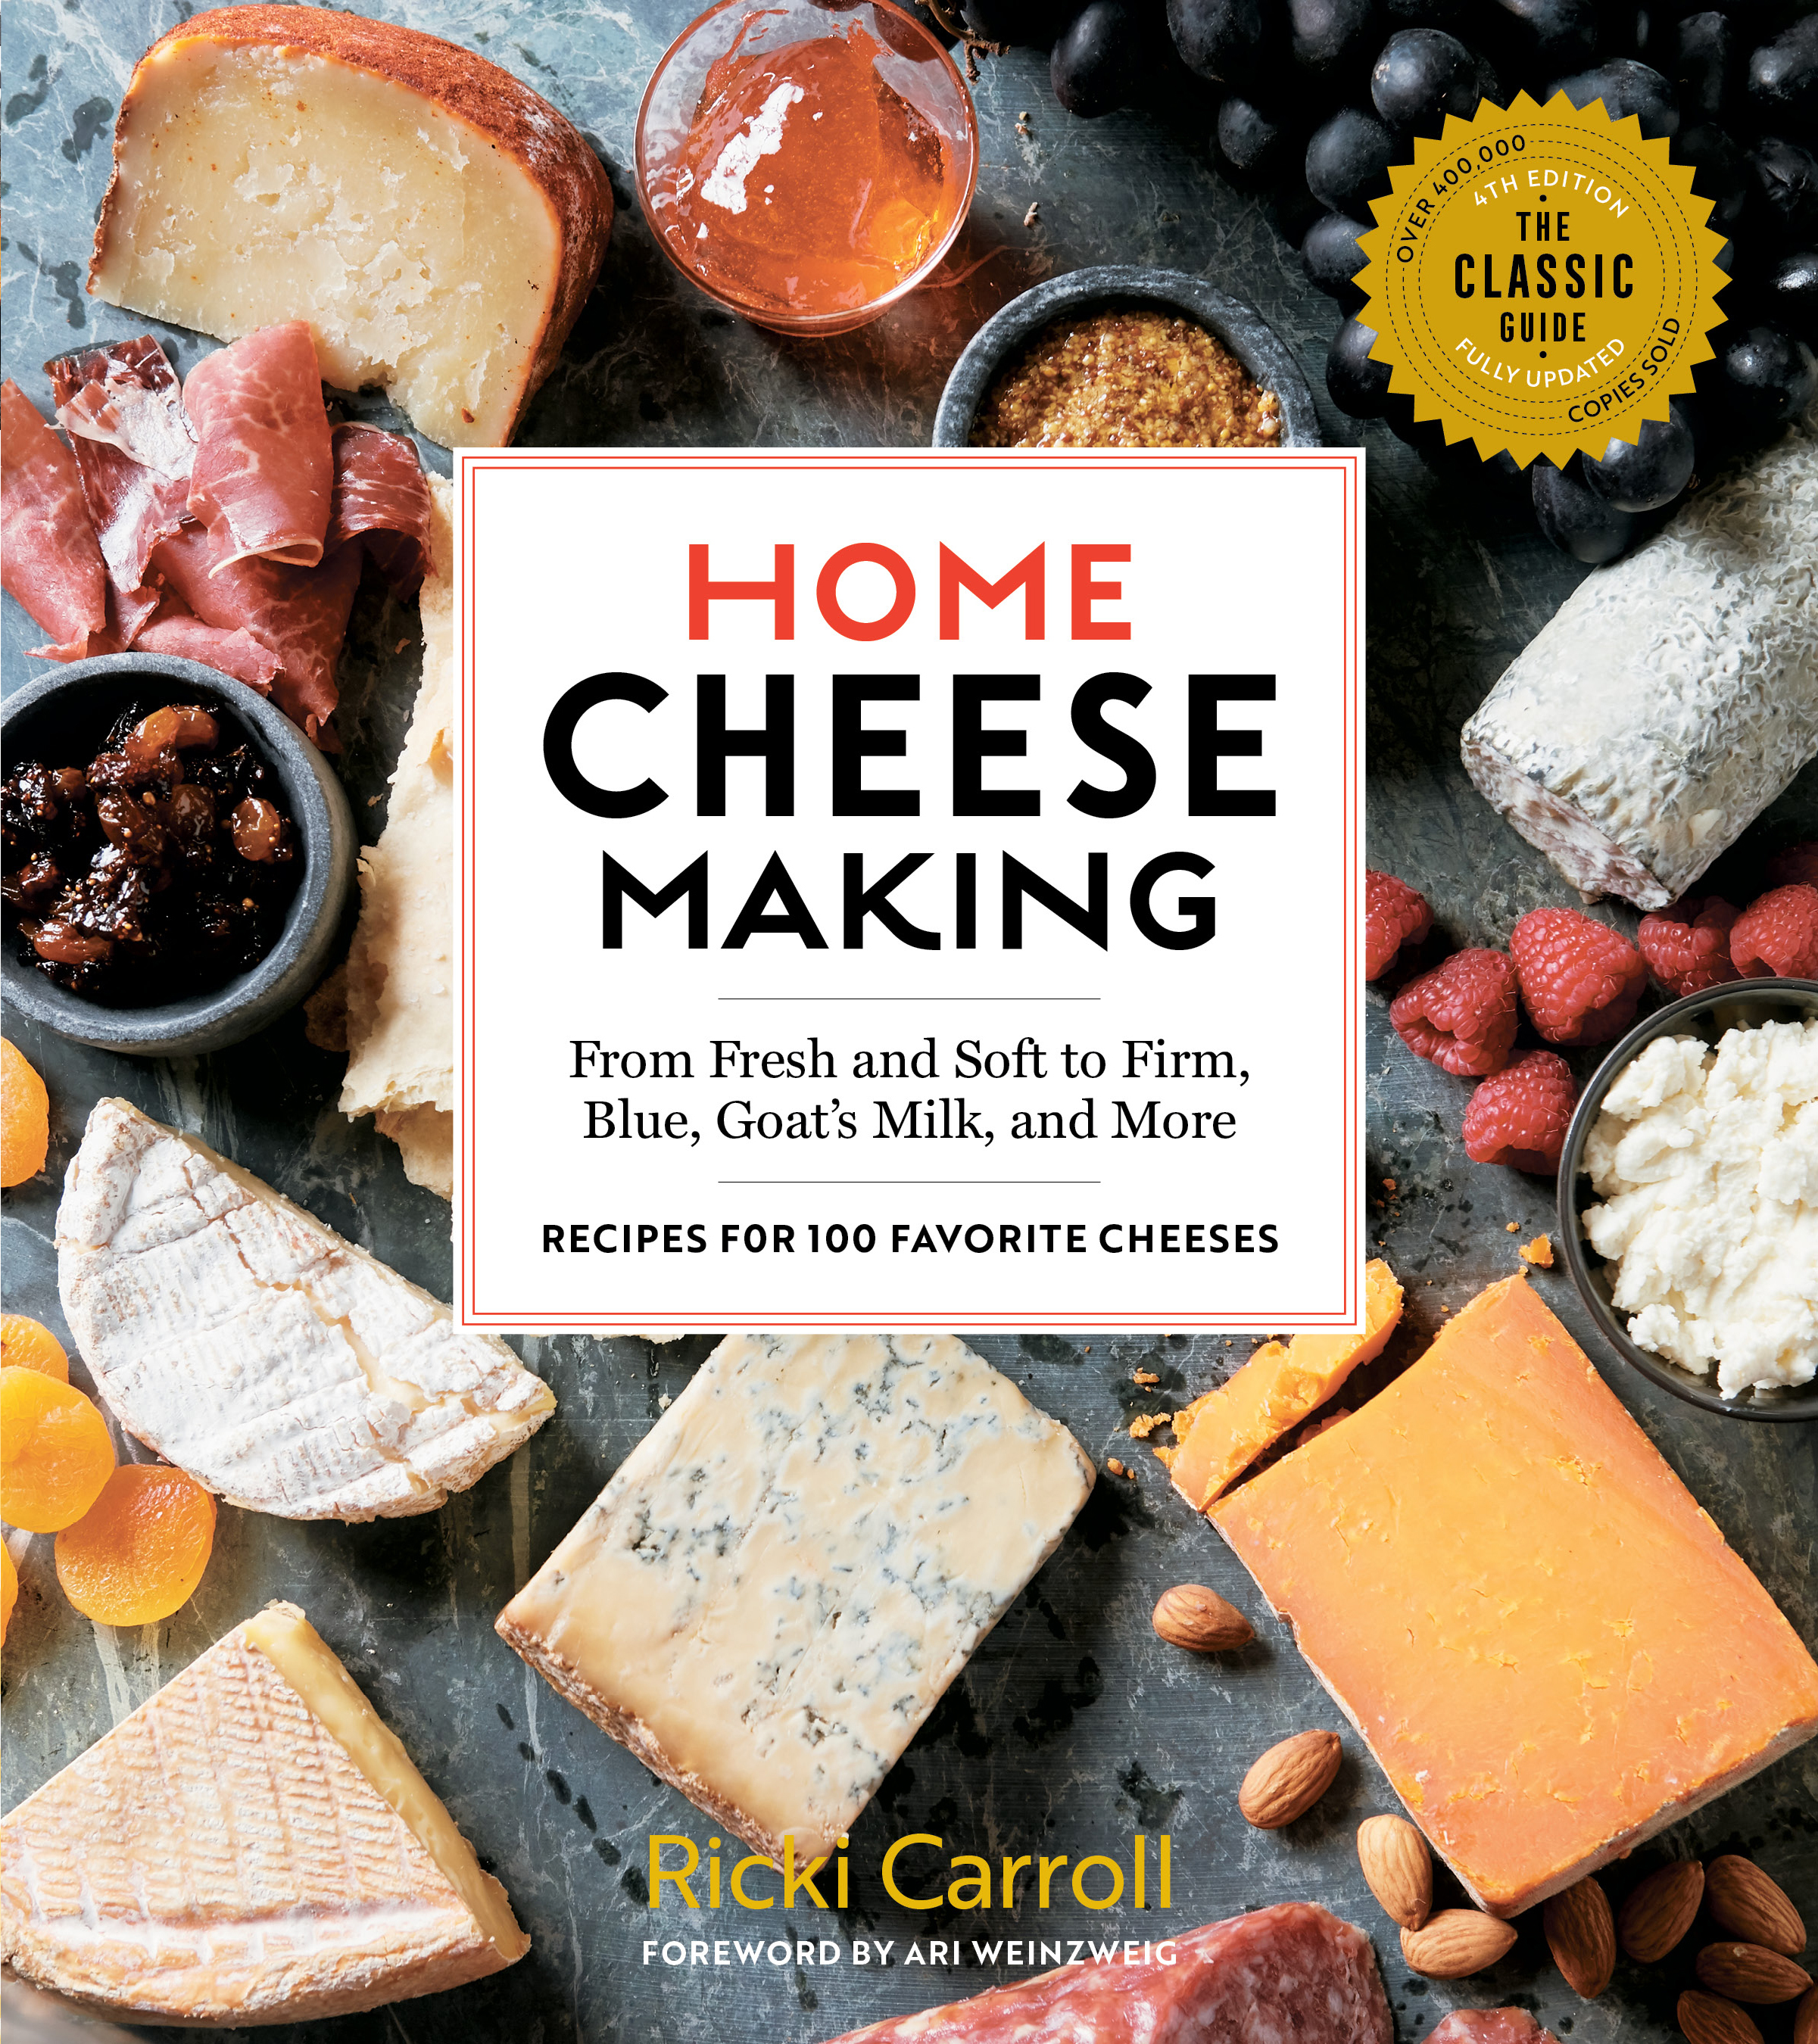 Home Cheese Making, 4th Edition From Fresh and Soft to Firm, Blue, Goat's Milk, and More; Recipes for 100 Favorite Cheeses - Ricki Carroll